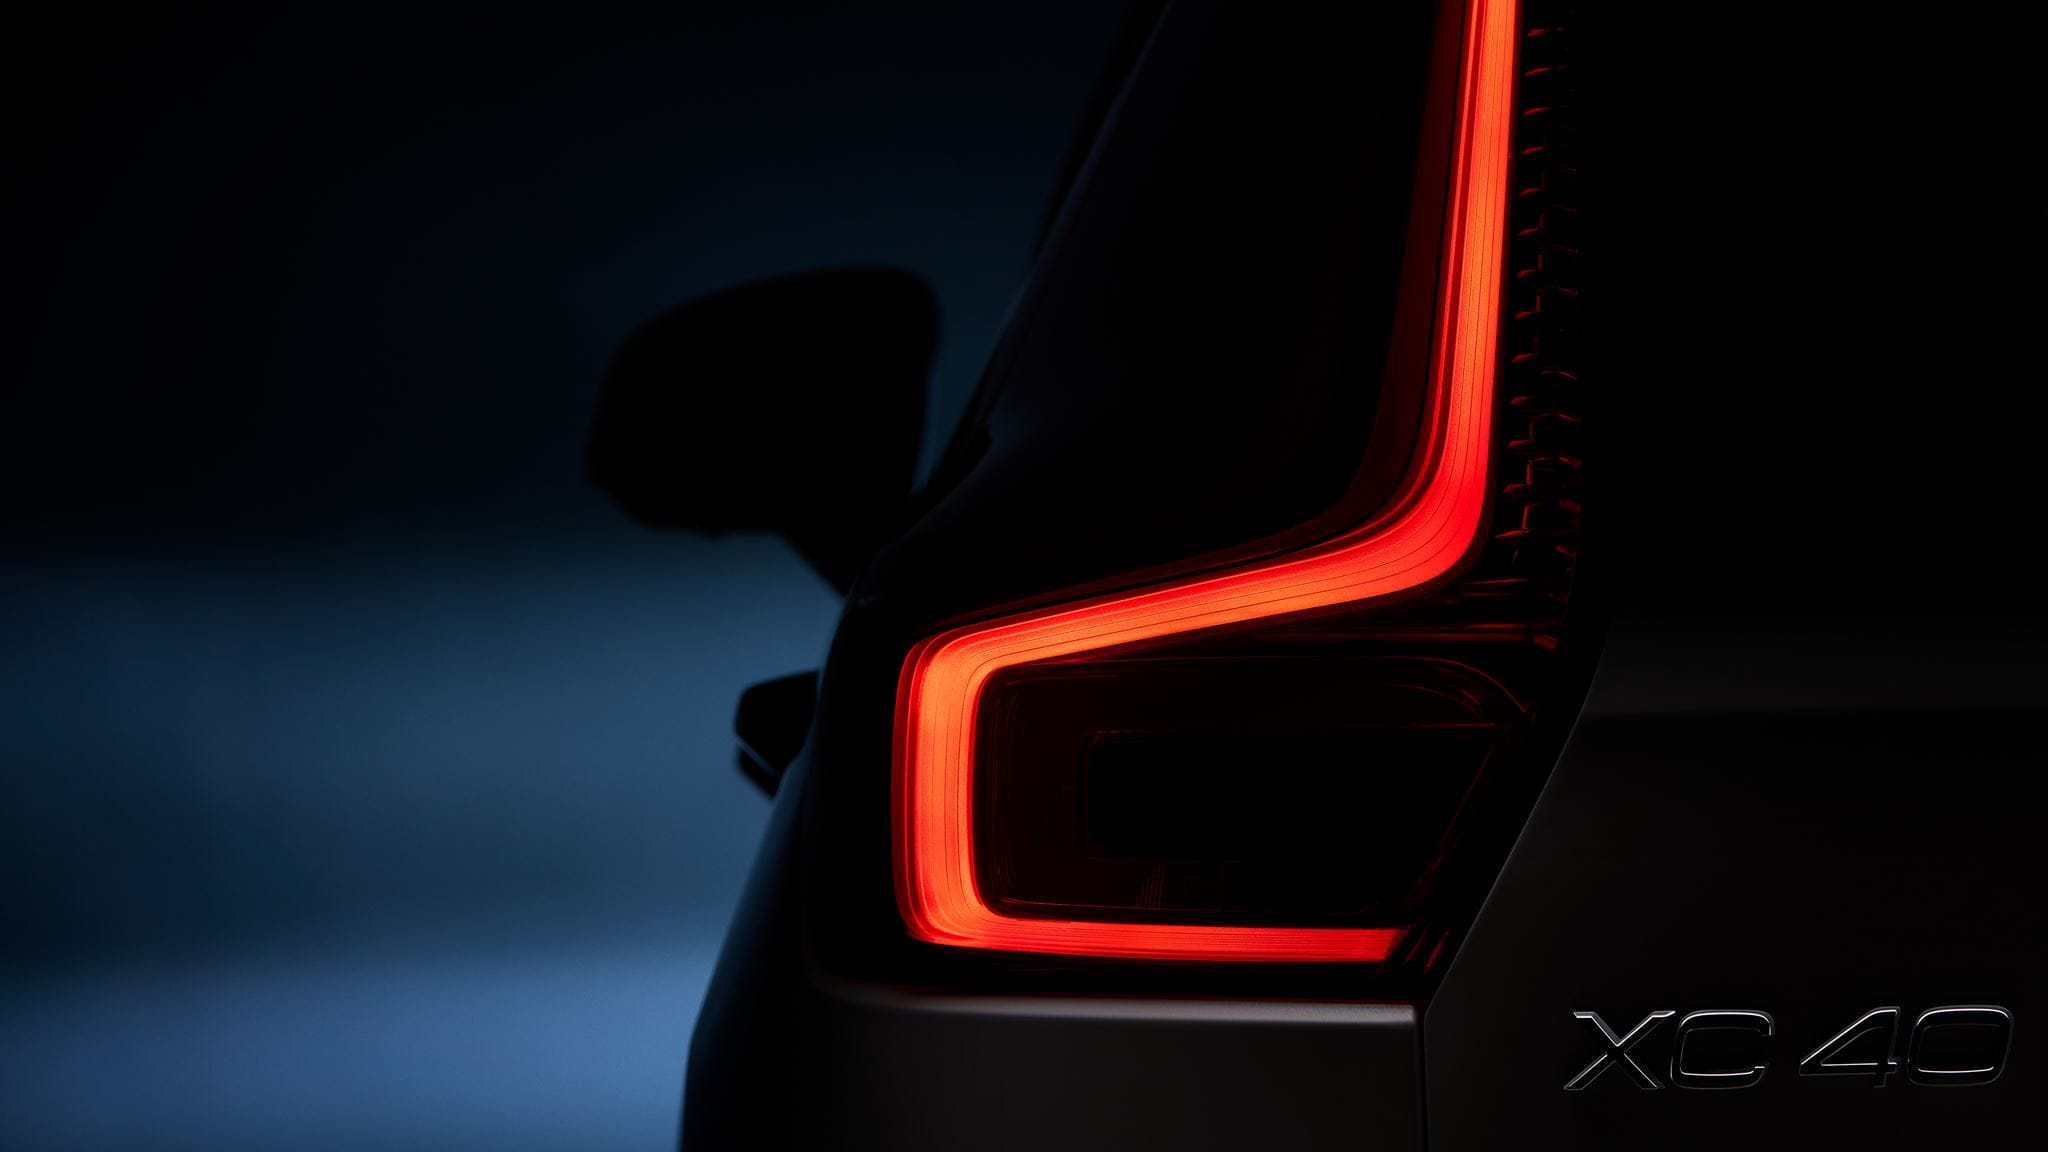 Volvo's first small premium SUV - 2019 VOLVO XC40's Tail light